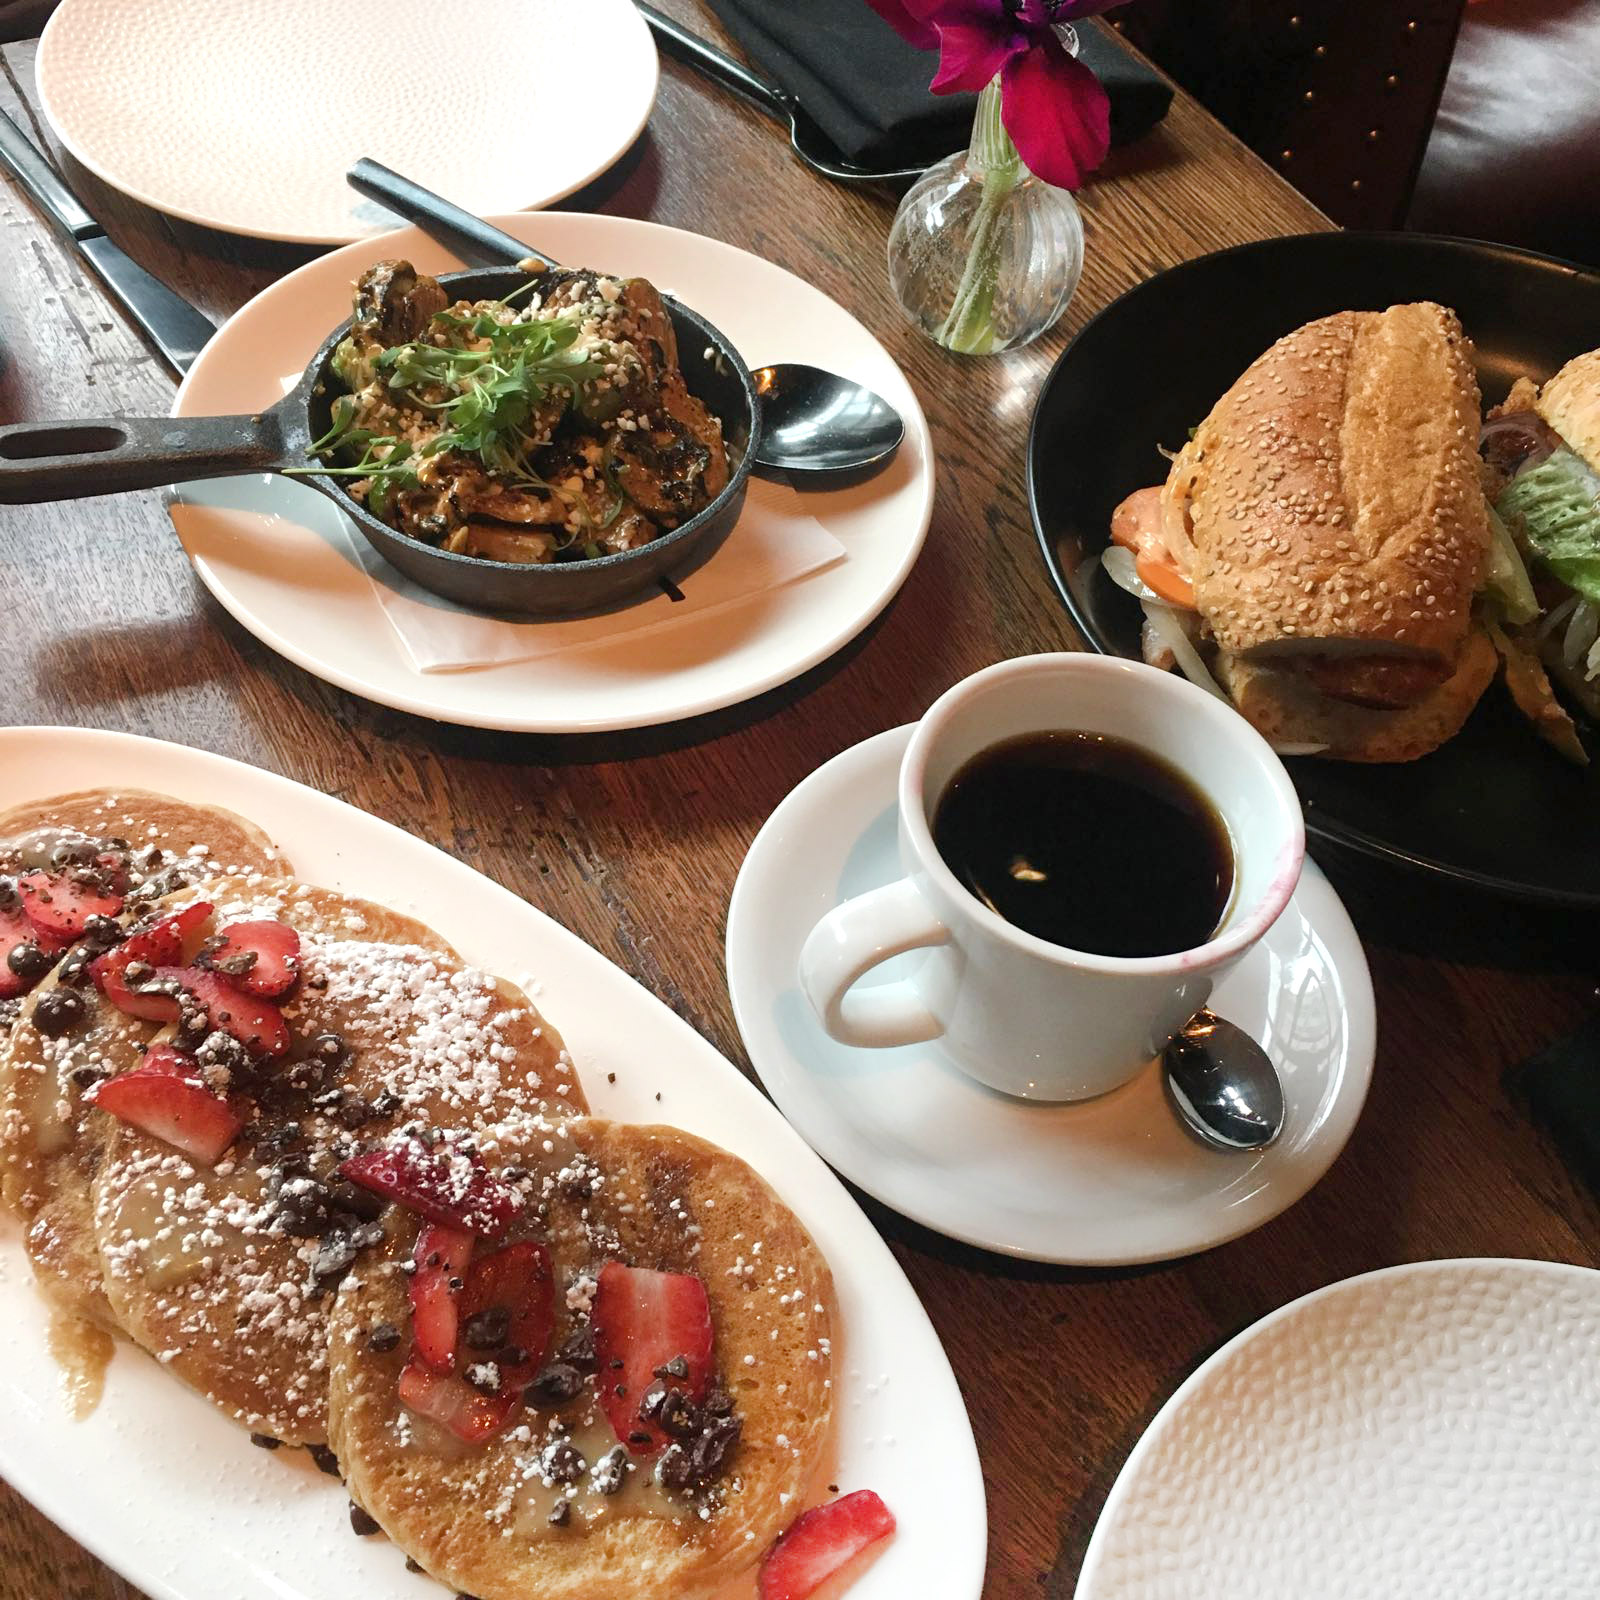 nyc-brunch-review-by-travel-blogger-editor